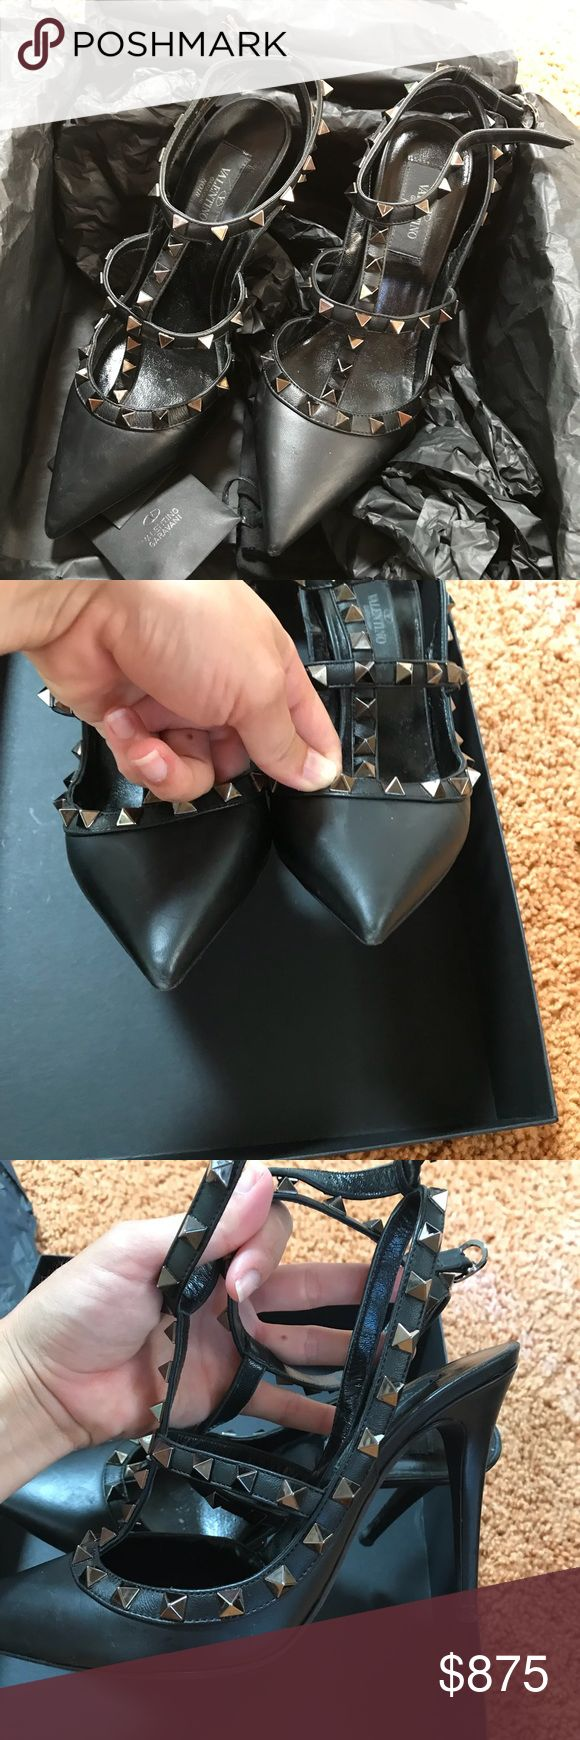 Valentino studded heel In very good used condition. These are very very lightly worn as photos show. No trades. Please make me an offer! Valentino Shoes Heels